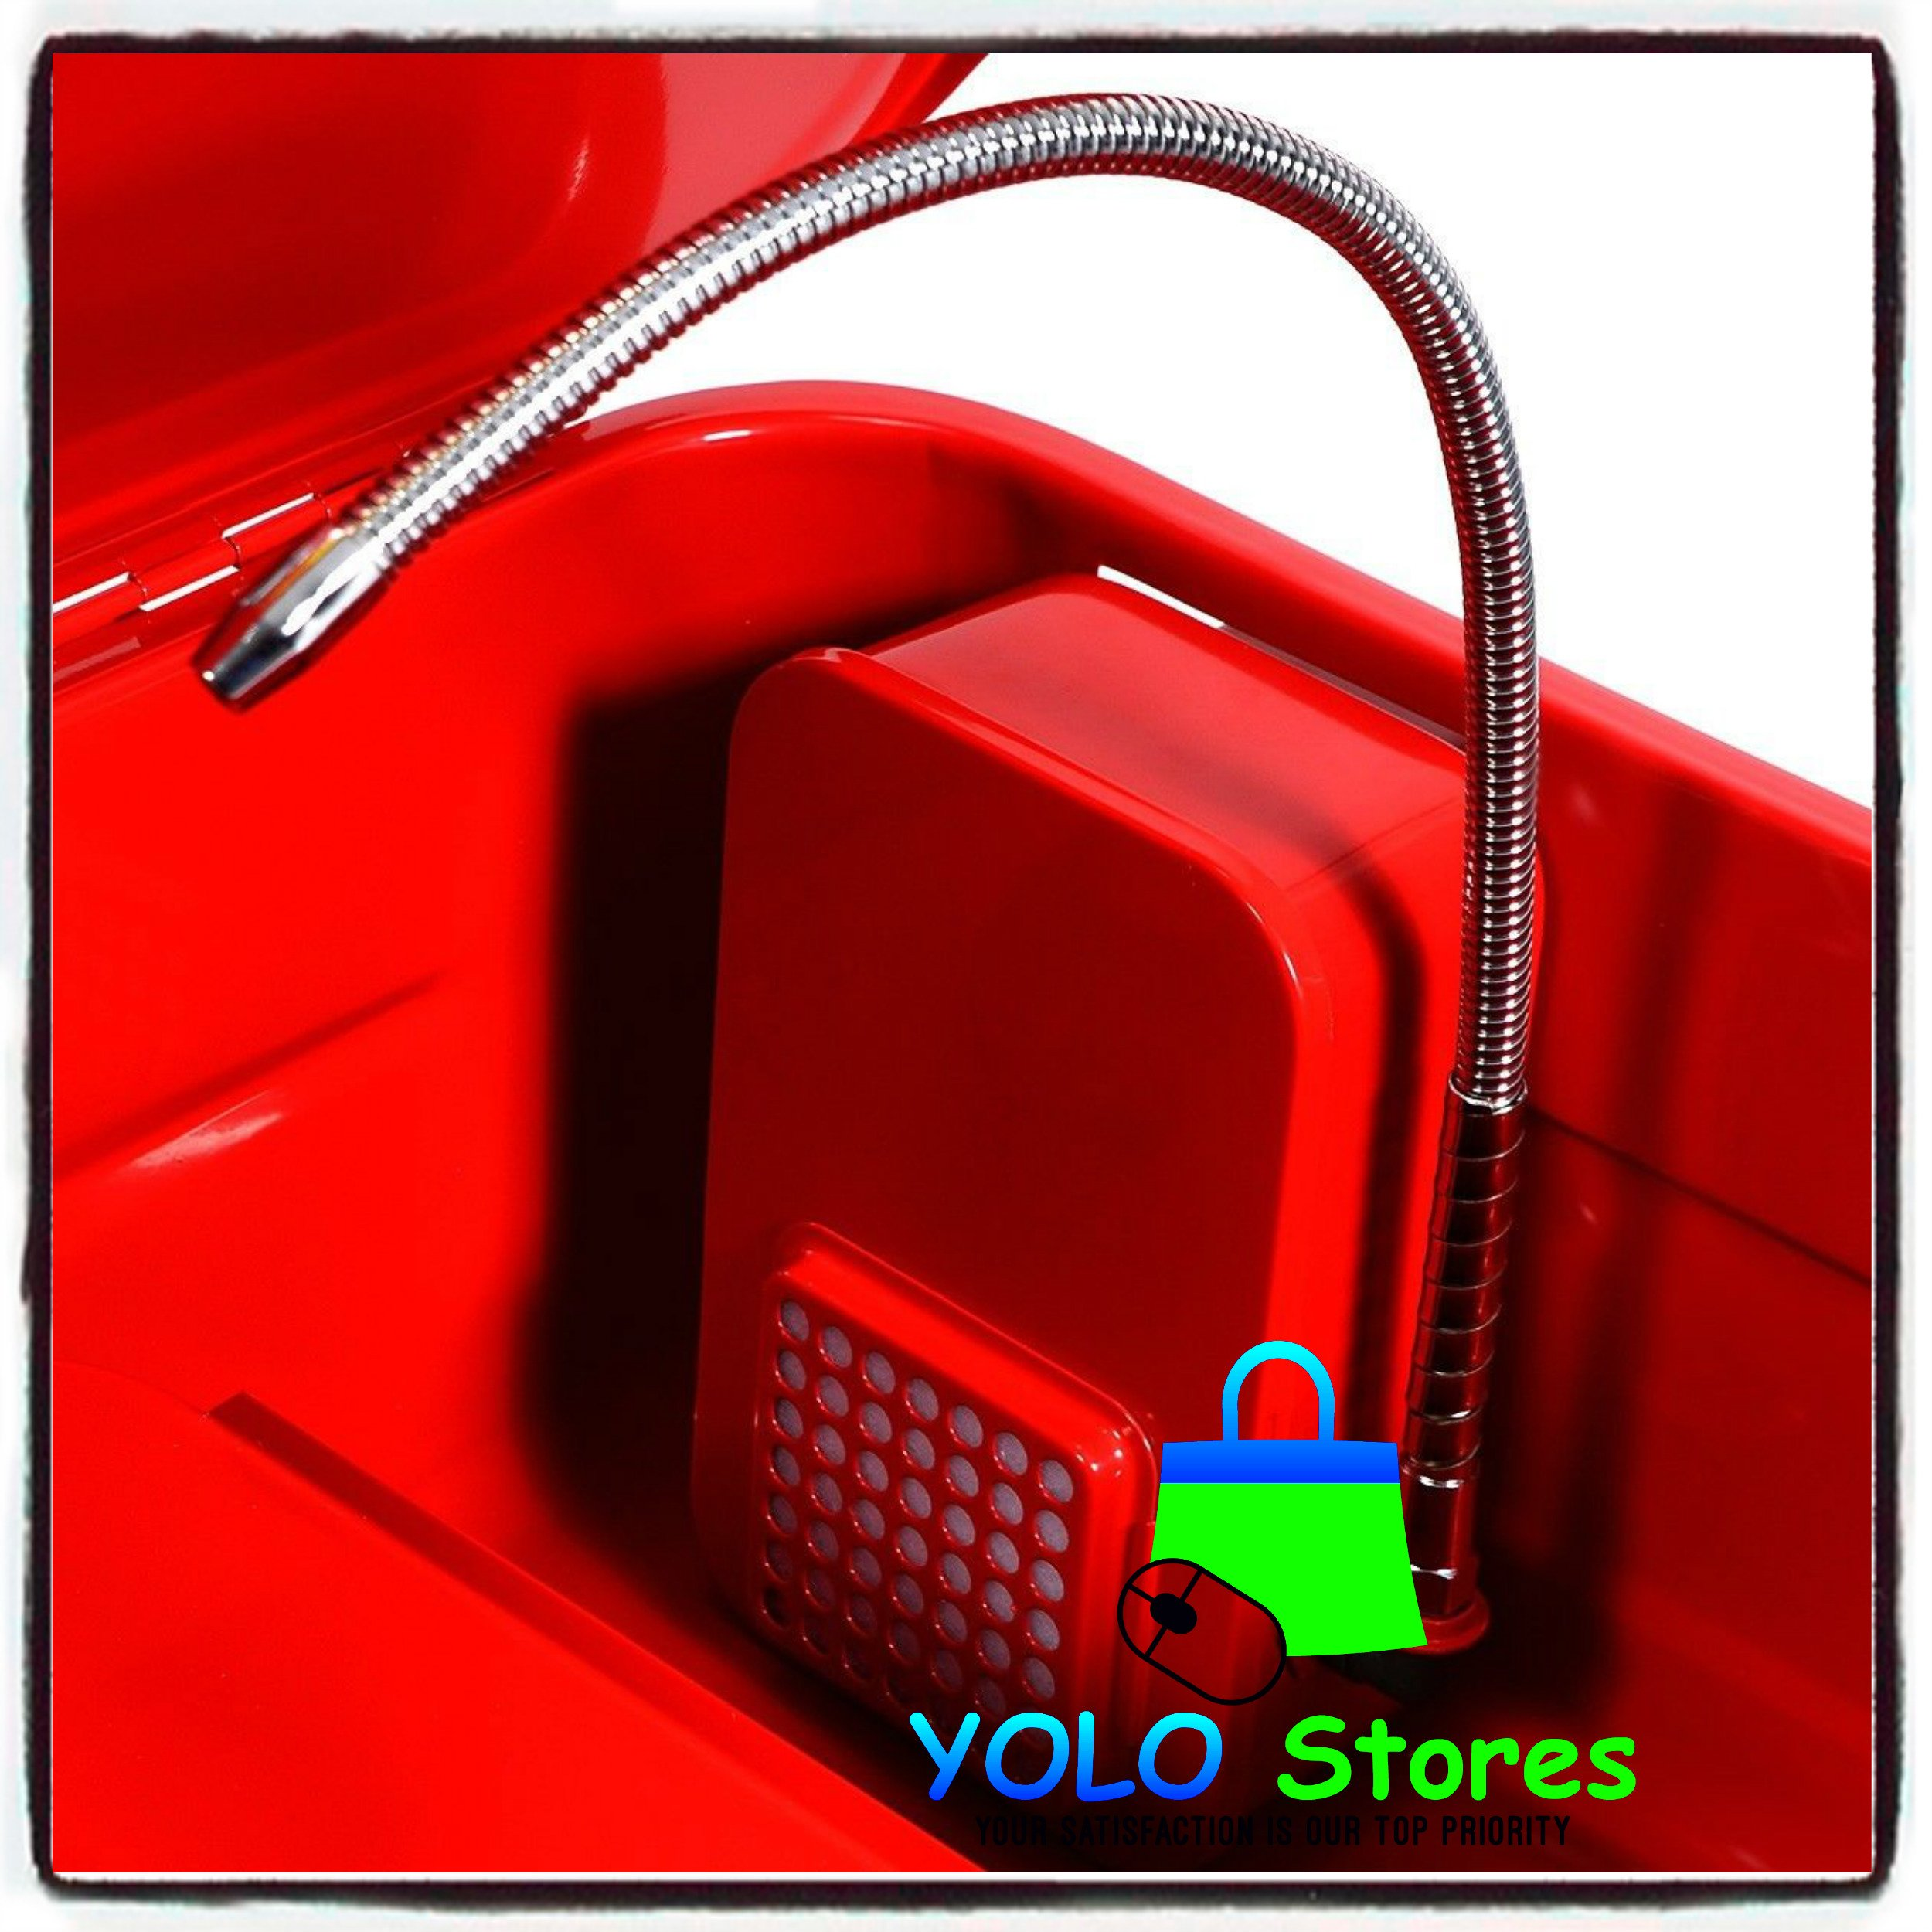 Automotive Parts Washer Cleaner Heavy Duty Electric Solvent Pump 20 Gallon Auto Tools By YOLO Stores by YOLO Stores (Image #5)